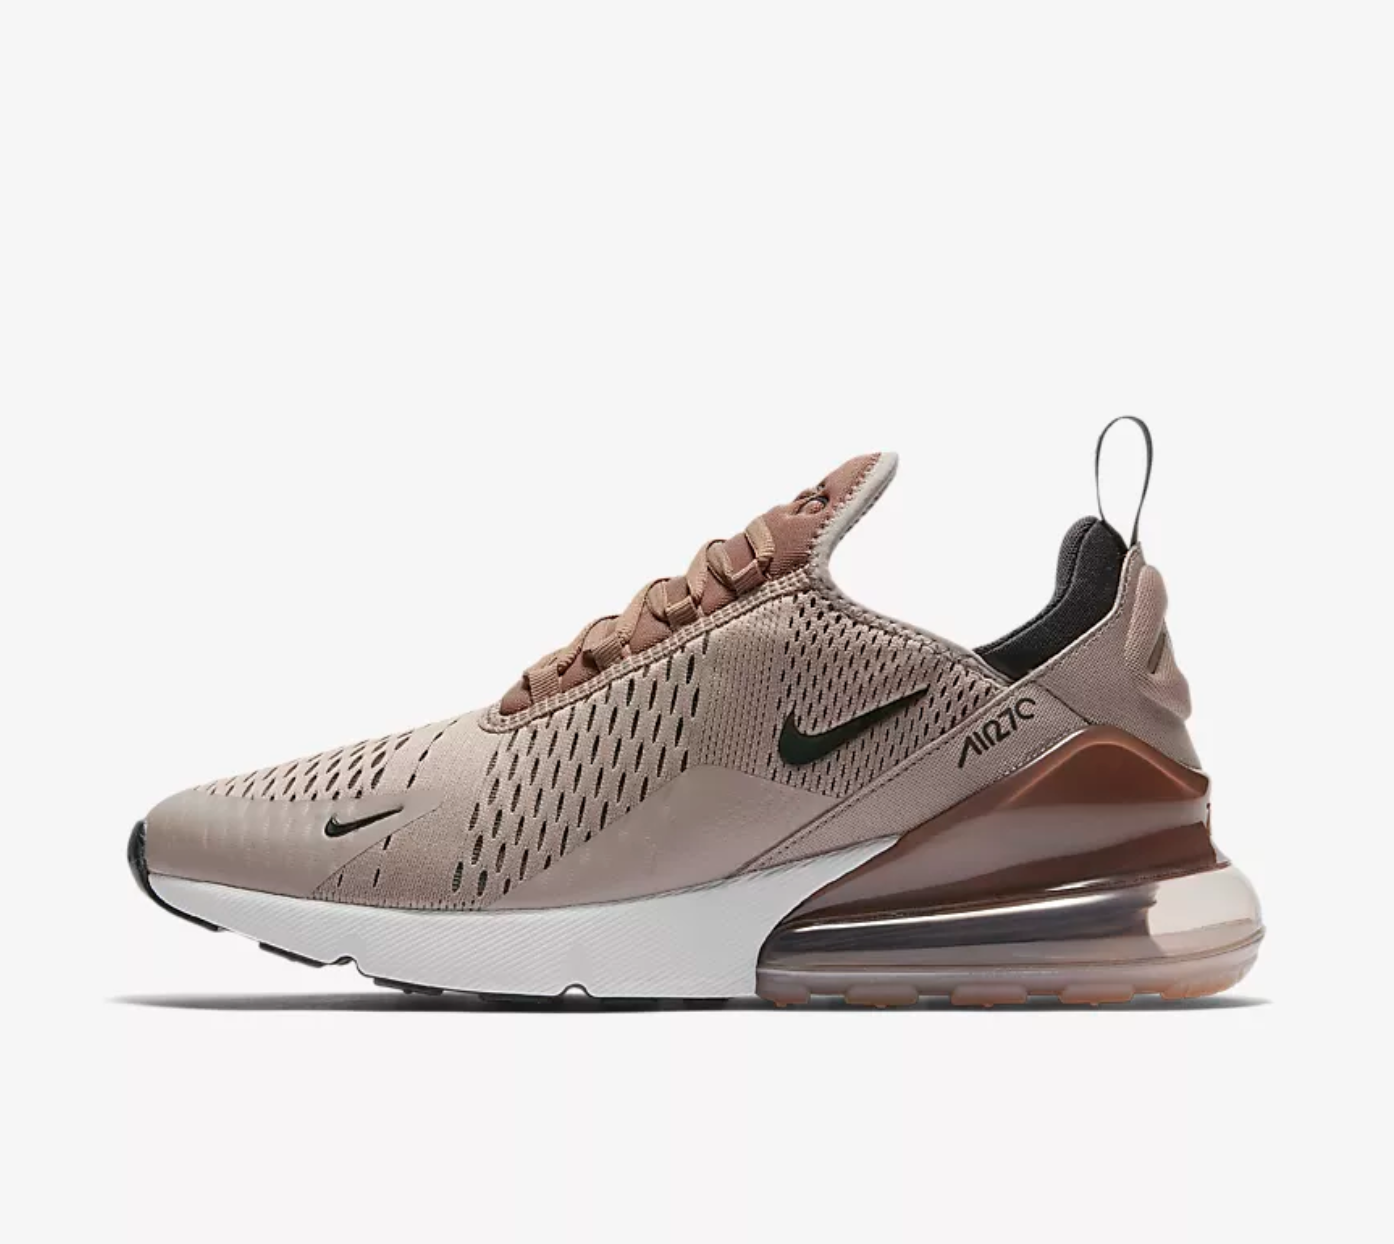 UPDATE: Nieuwe colorways van de Nike Air Max 270